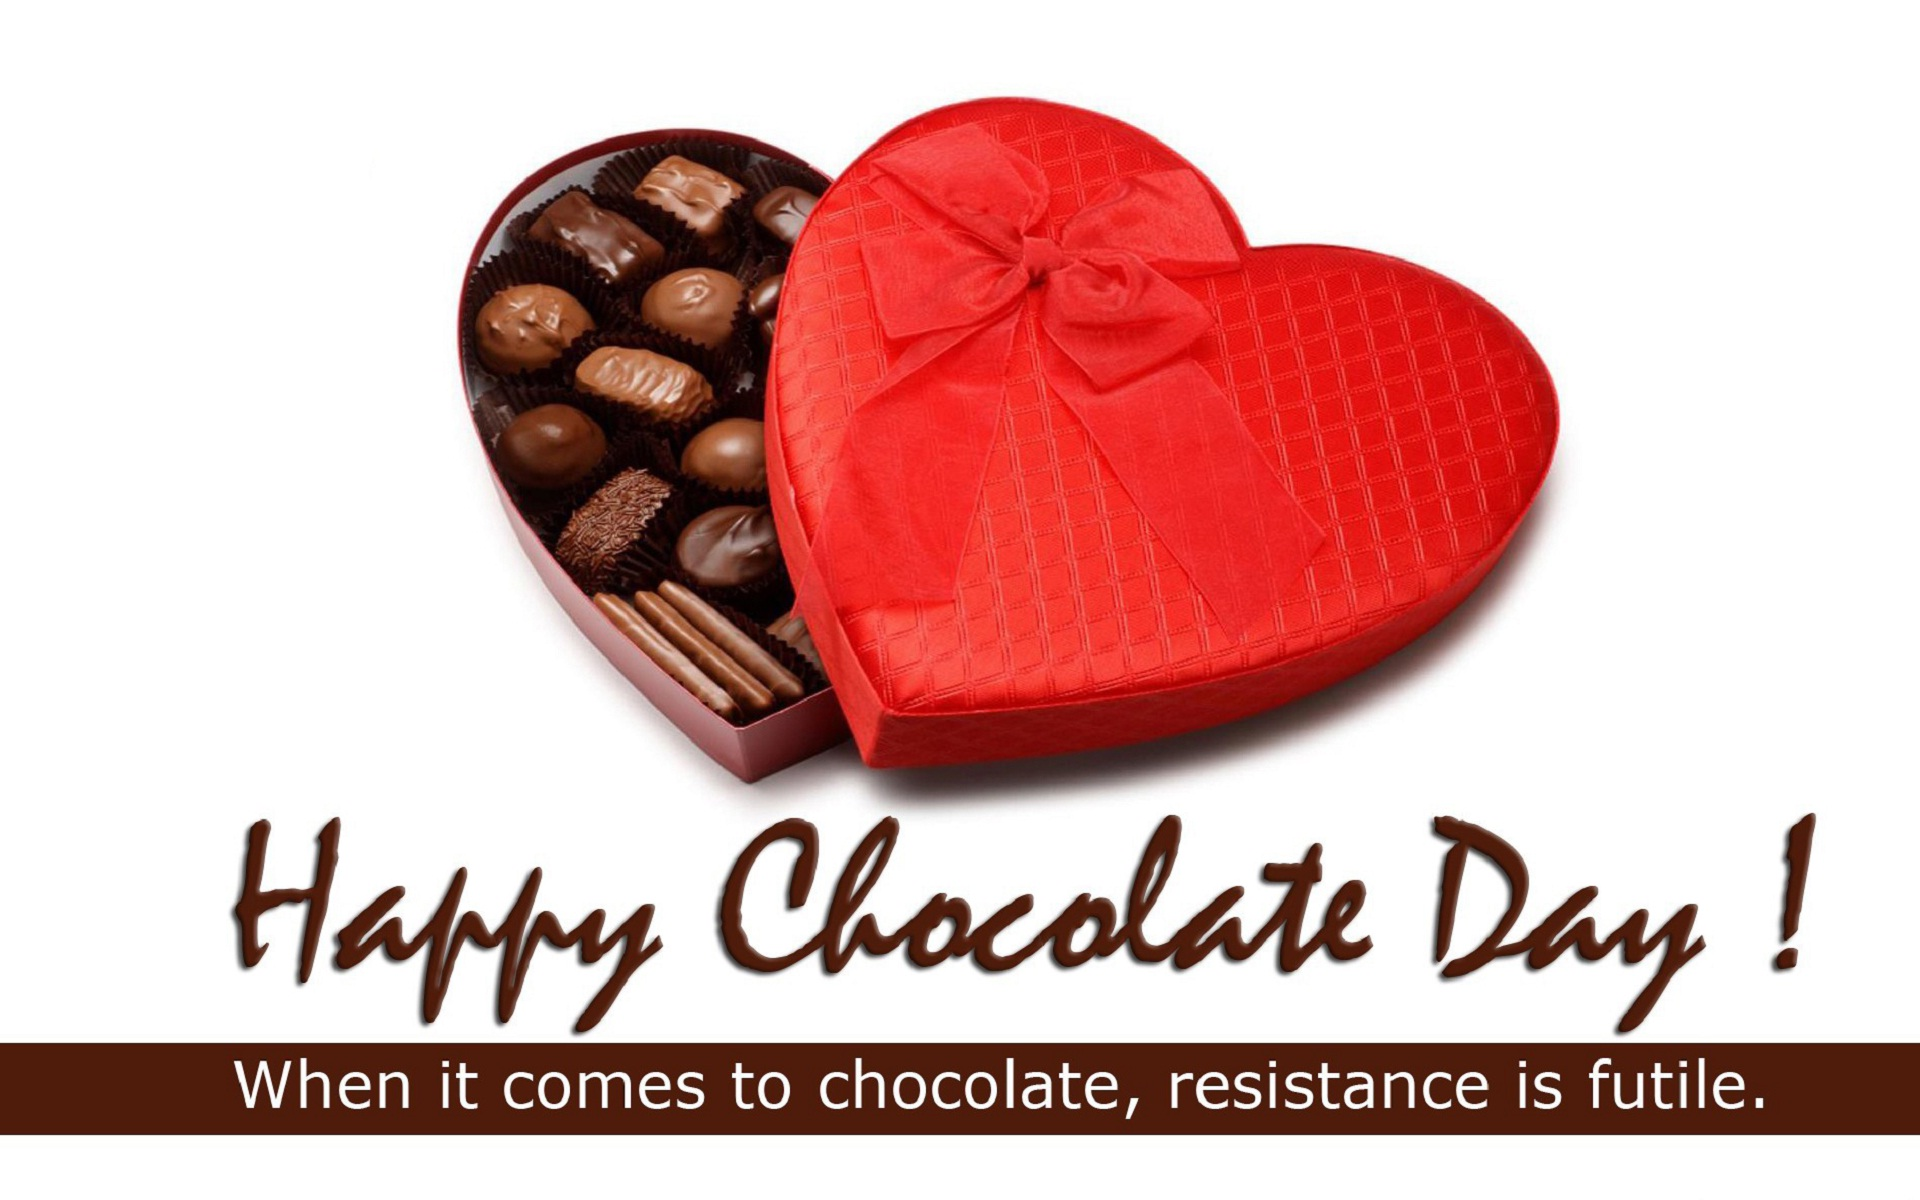 Happy Chocolate Day Best Wishes Wallpapers